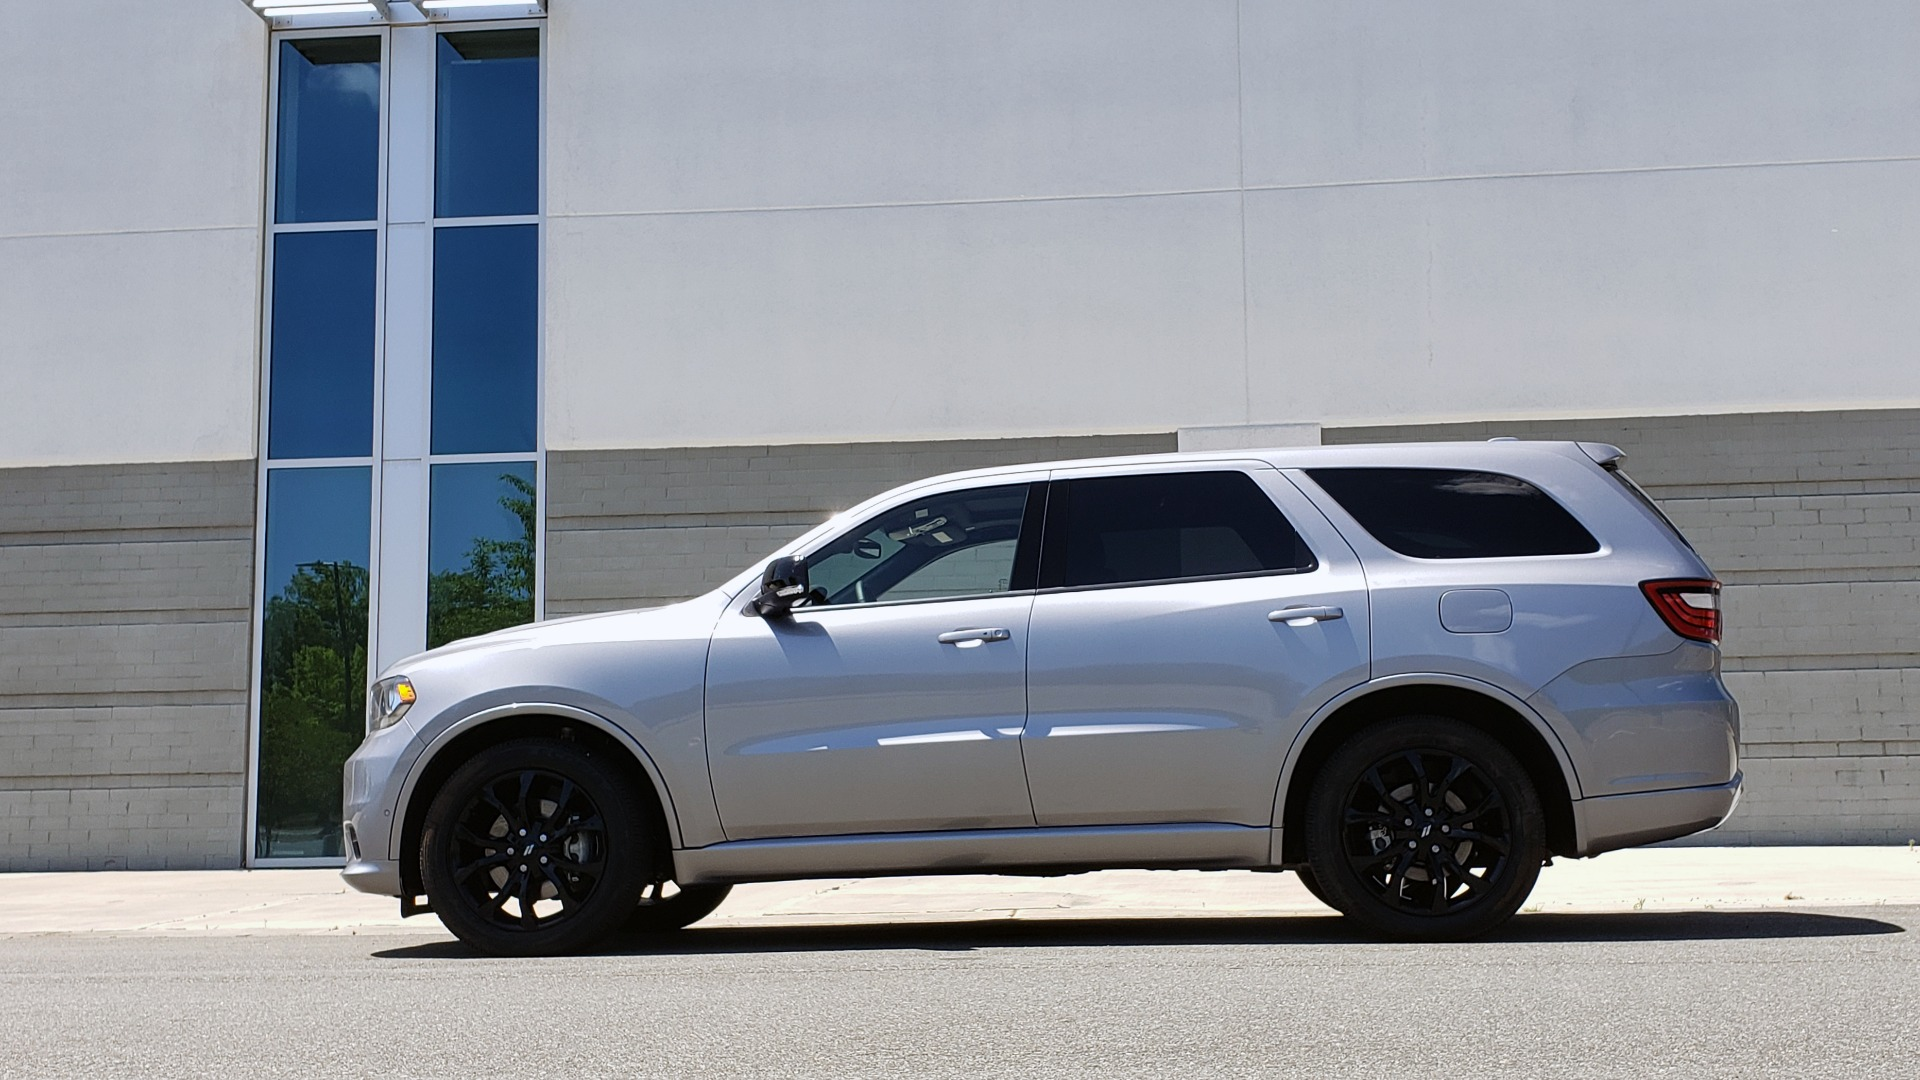 Used 2019 Dodge DURANGO R/T BLACKTOP AWD / TECH / ADAPT CRUS / TOW GROUP / SUNROOF / REARVIEW for sale Sold at Formula Imports in Charlotte NC 28227 6